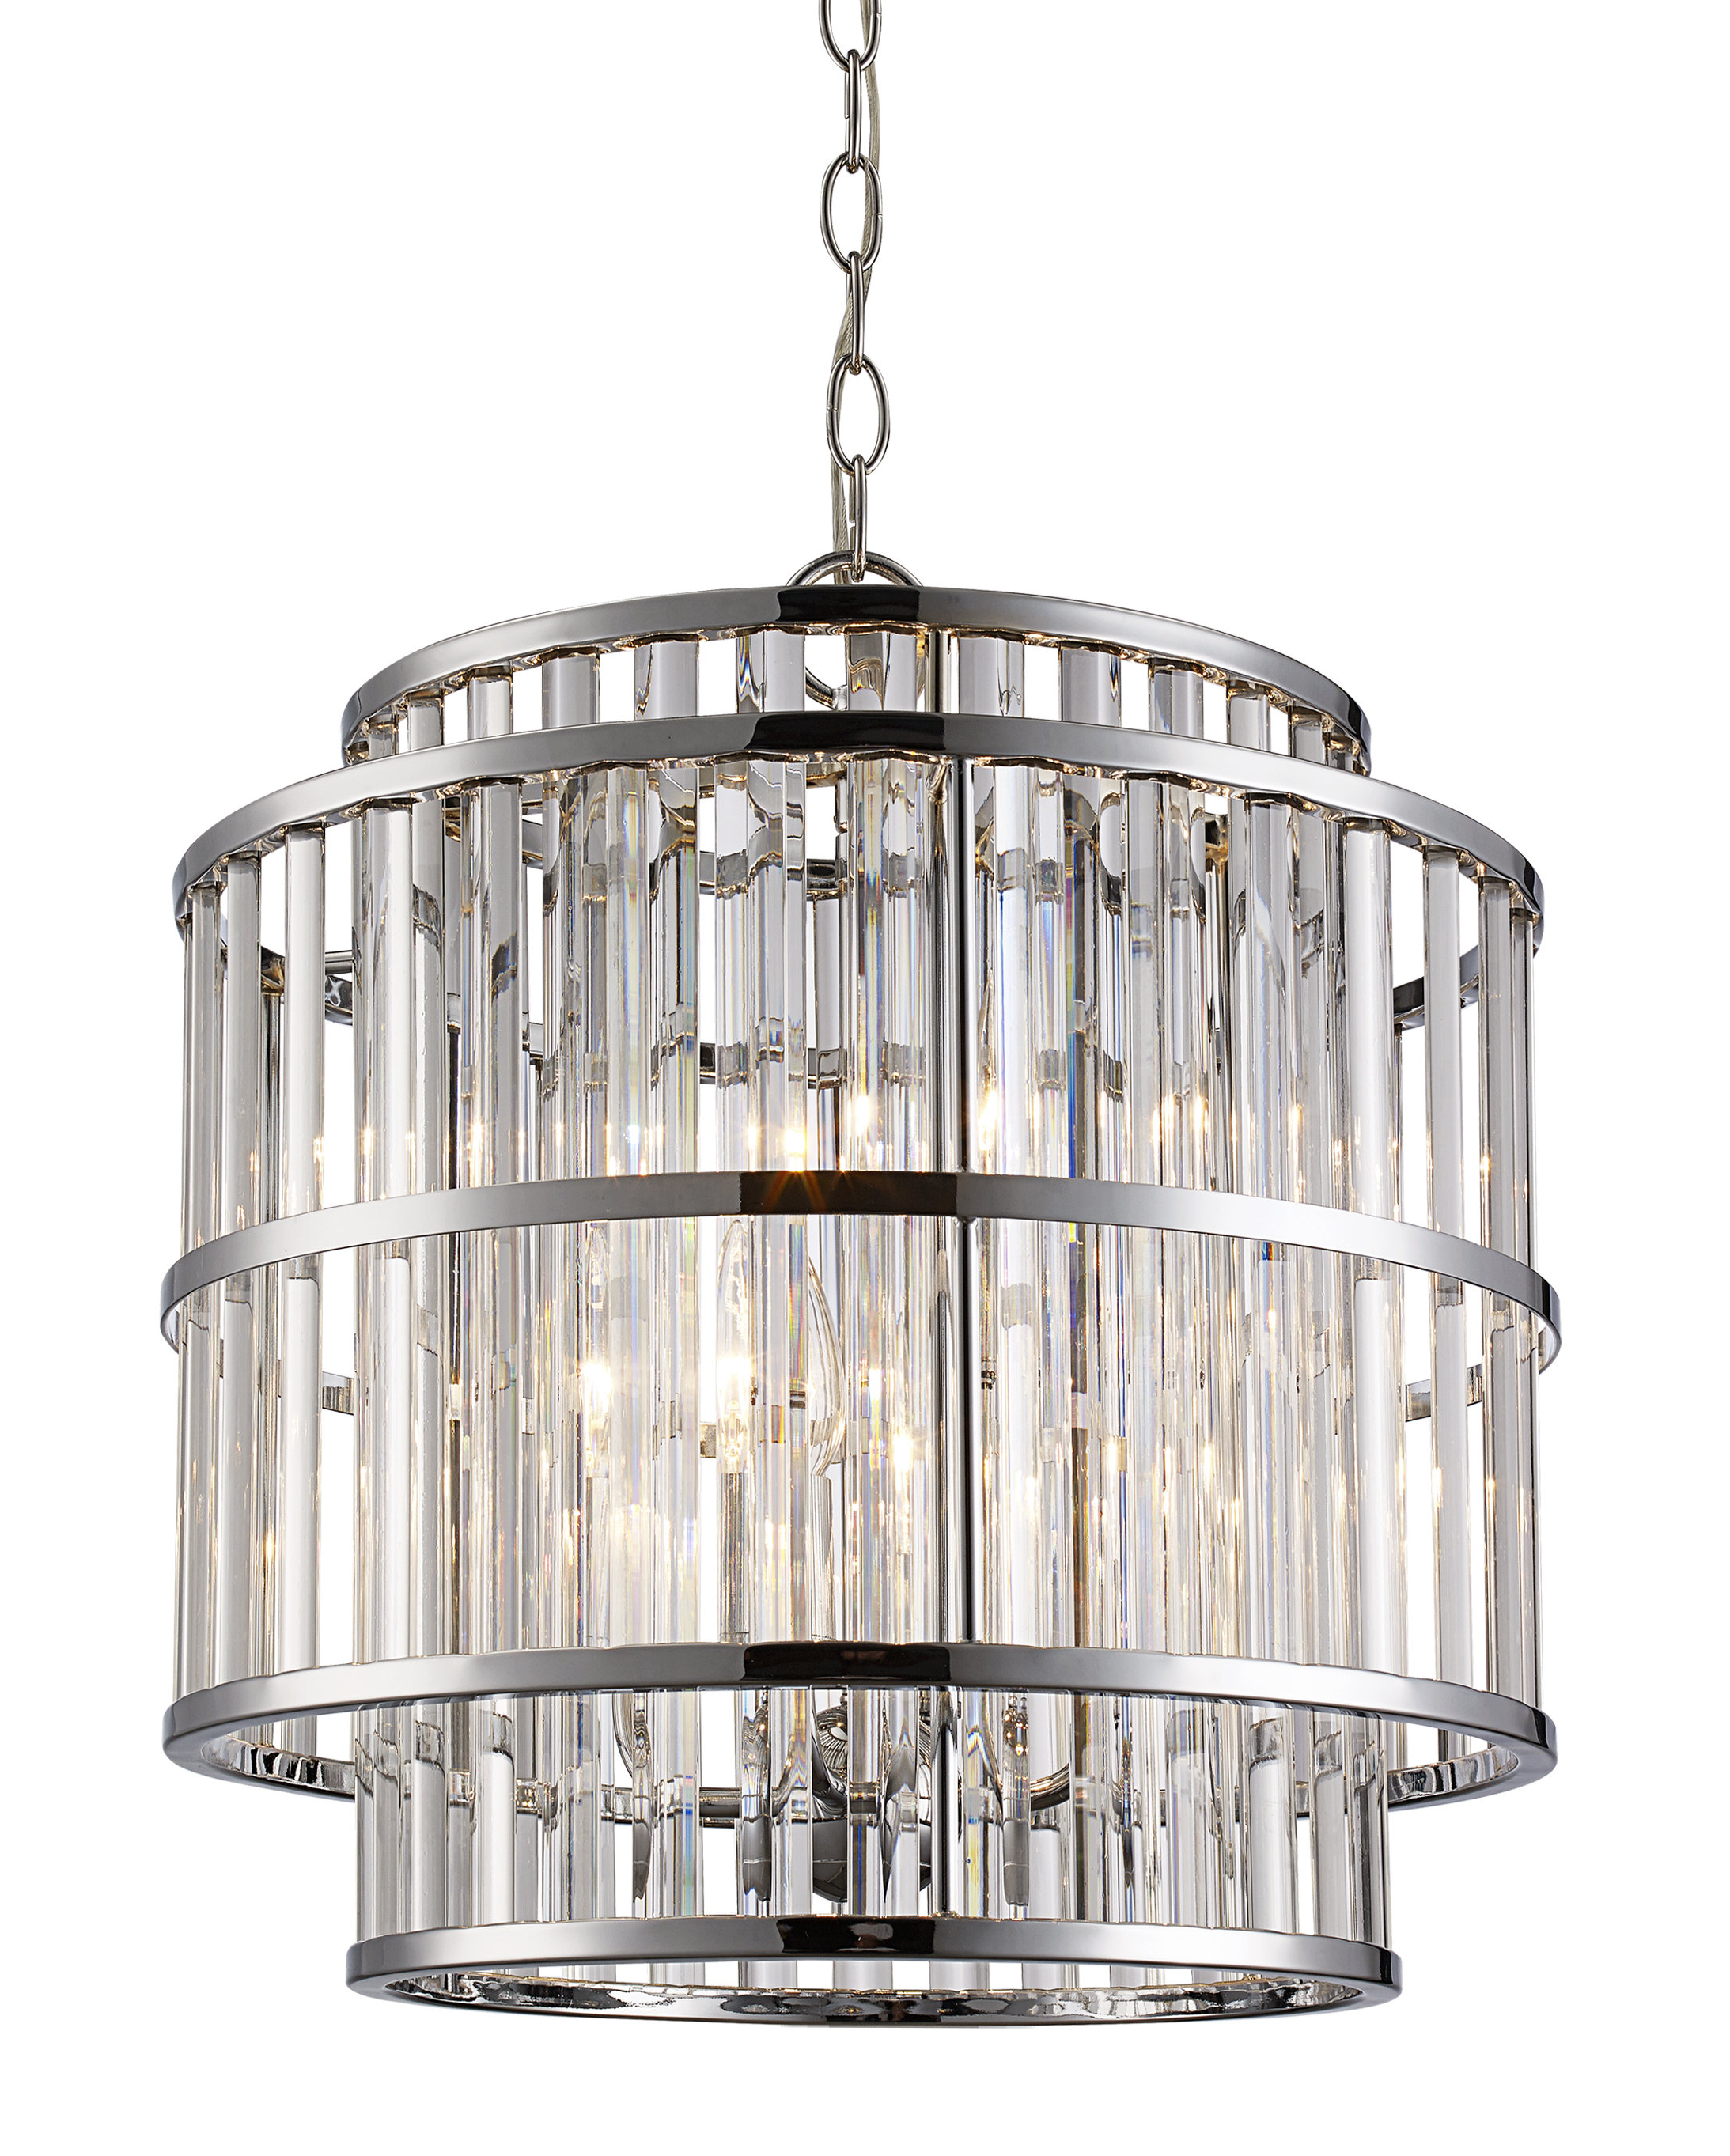 Widely Used Dailey 4 Light Drum Chandeliers Intended For Beeston 4 Light Drum Chandelier (Gallery 6 of 20)